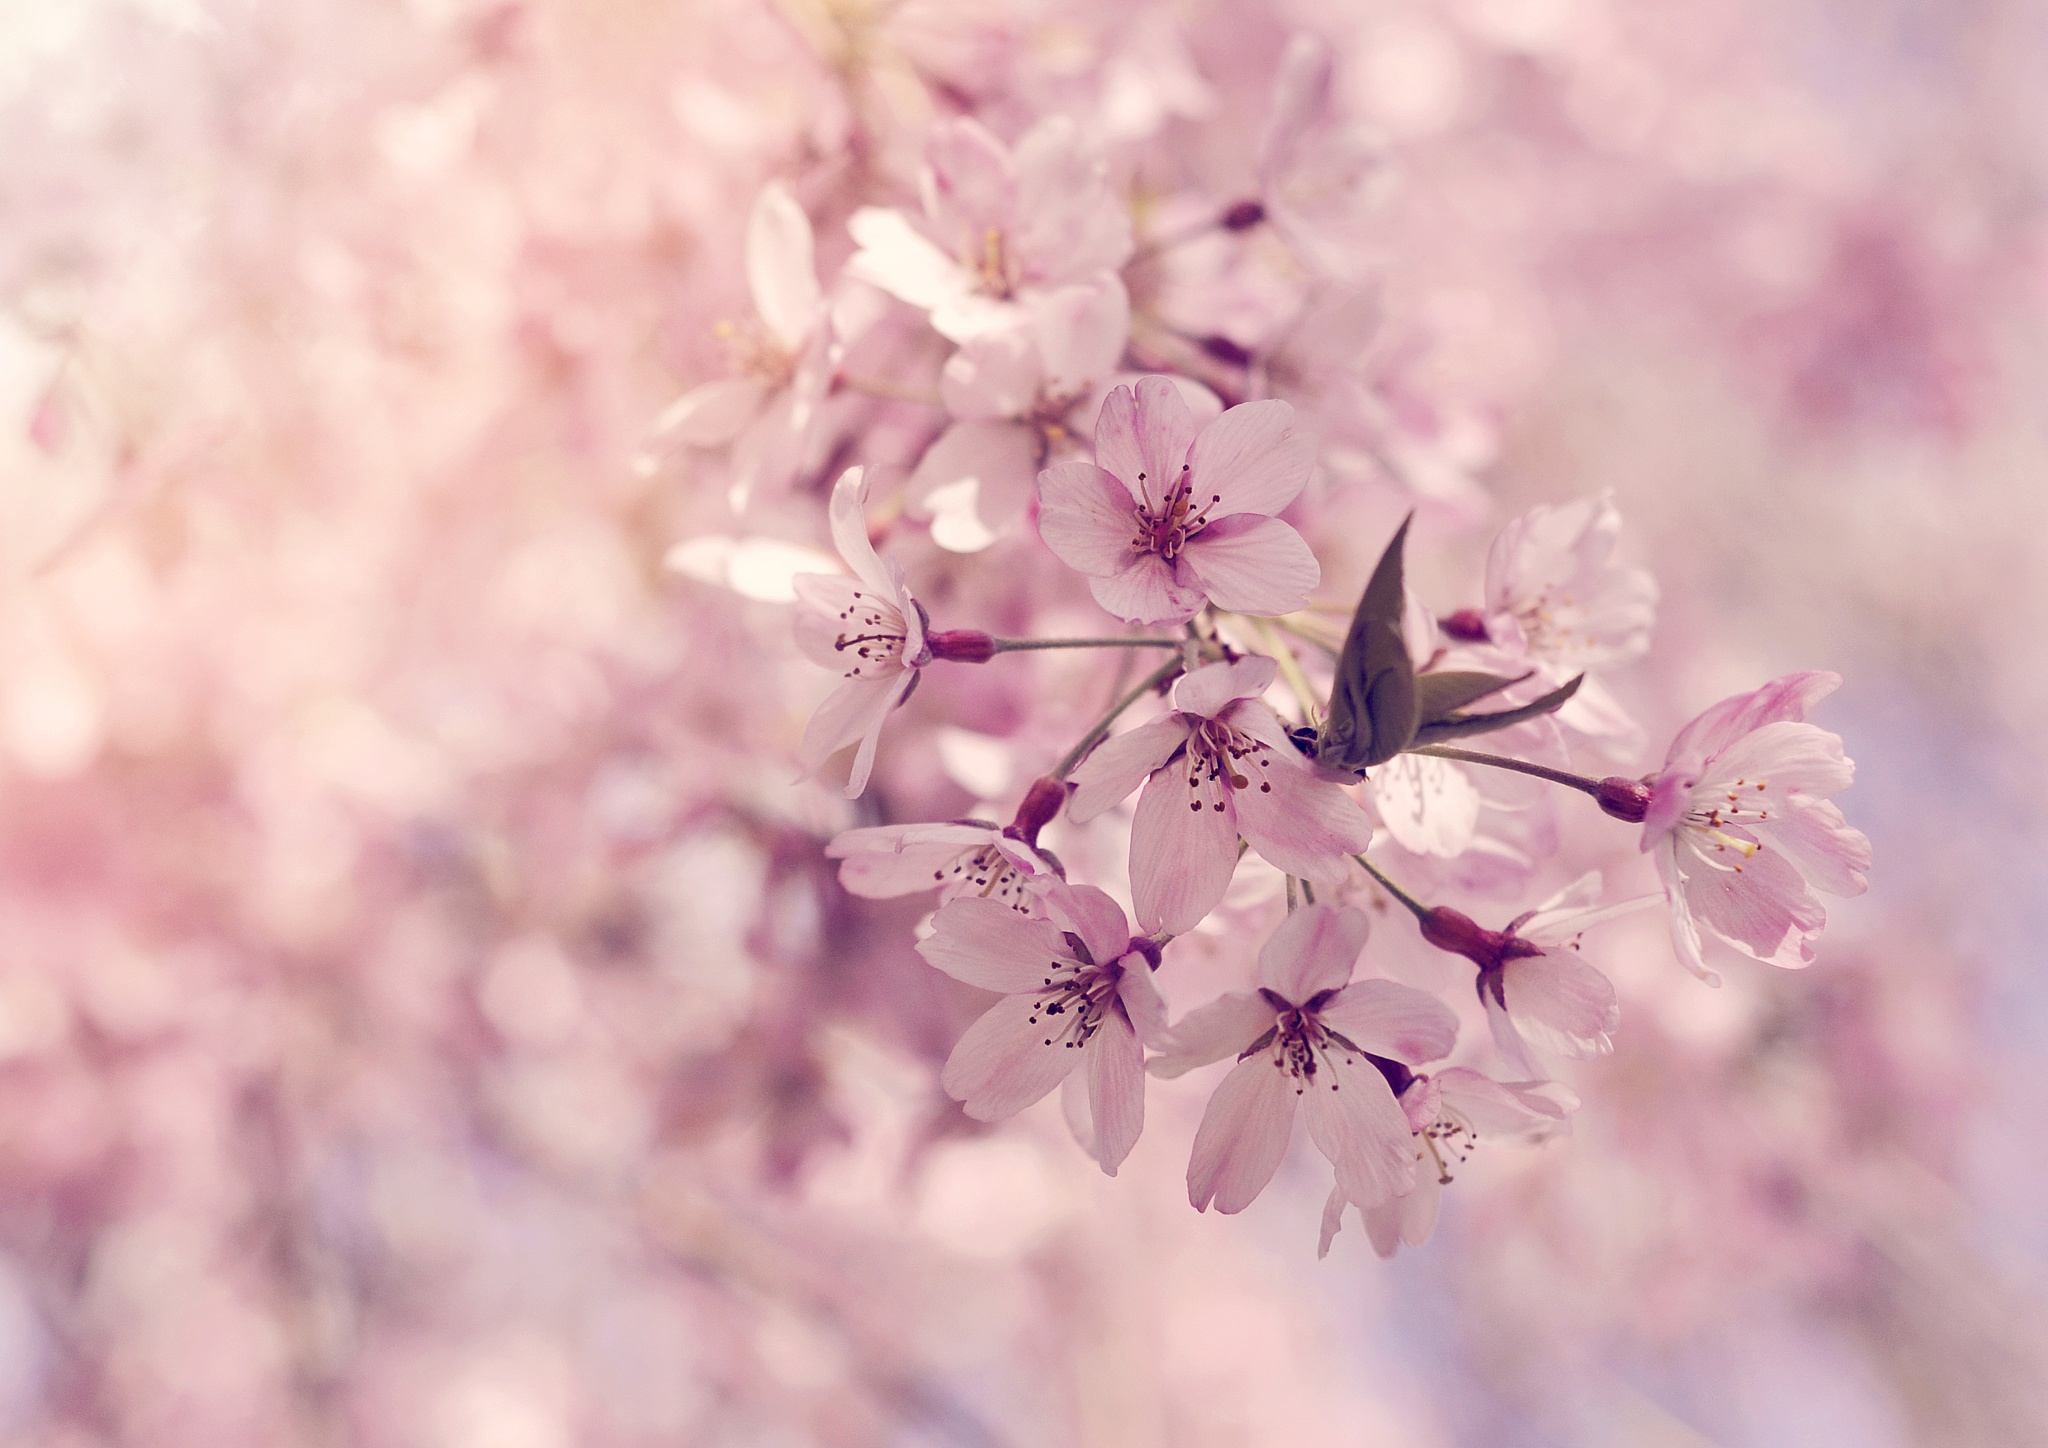 Cherry Blossom by rachelphillips100